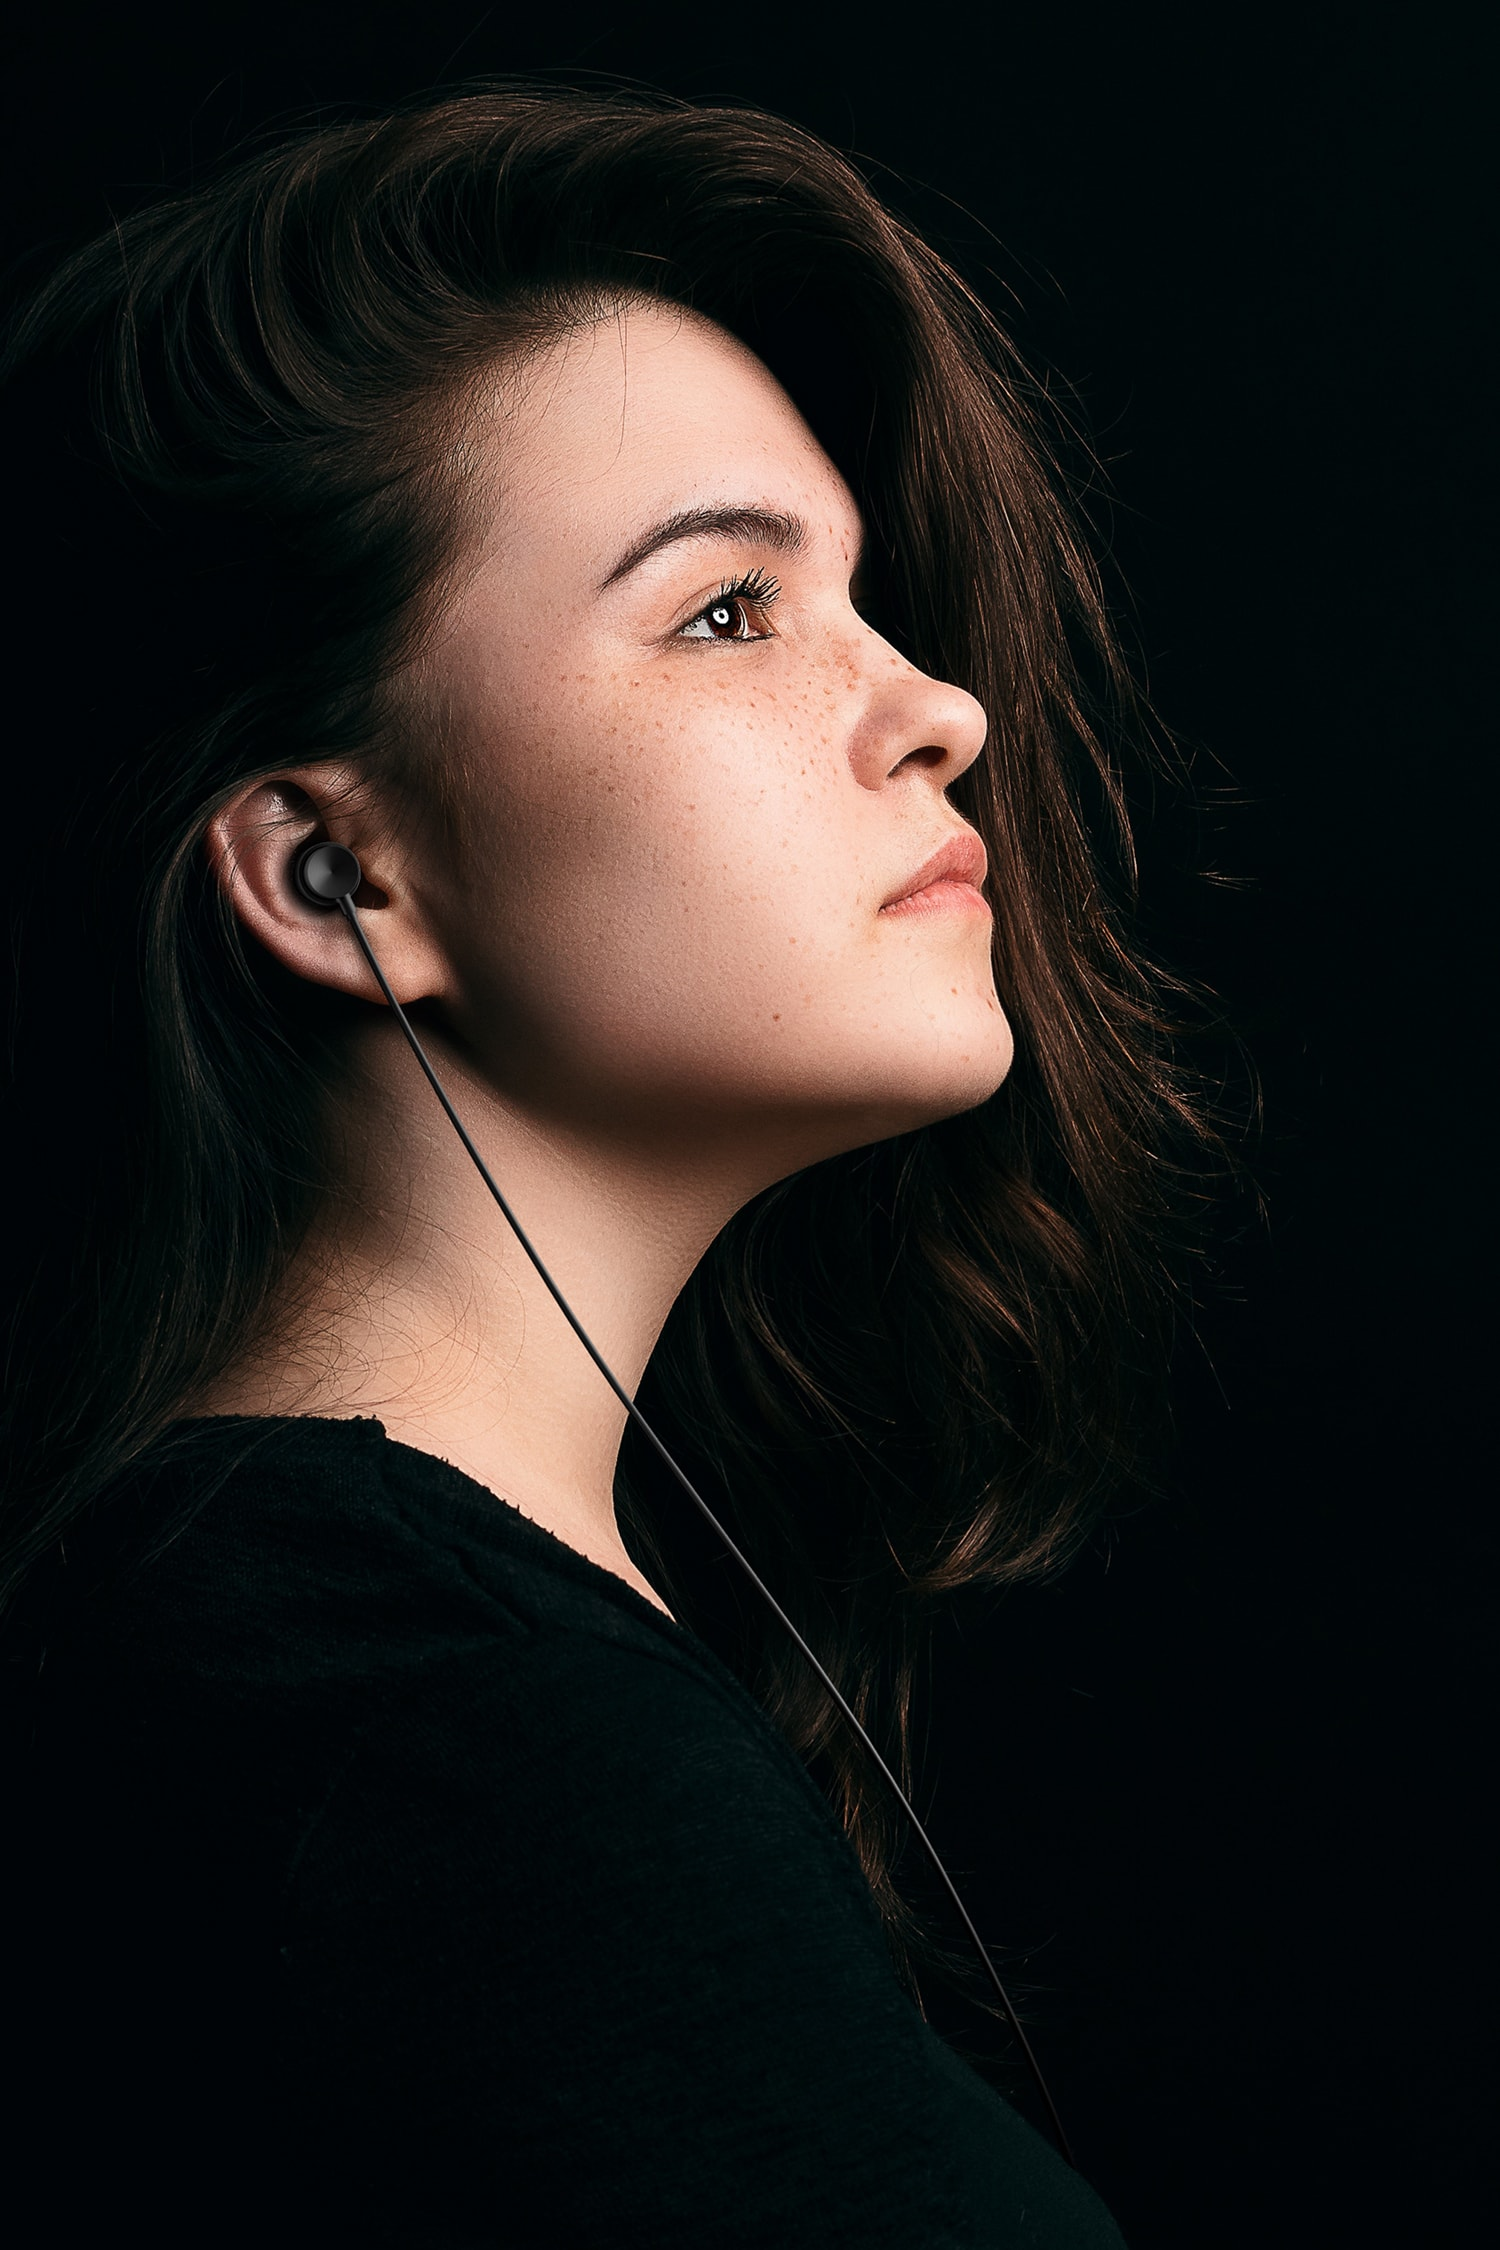 Black headphones in a young woman's ear.